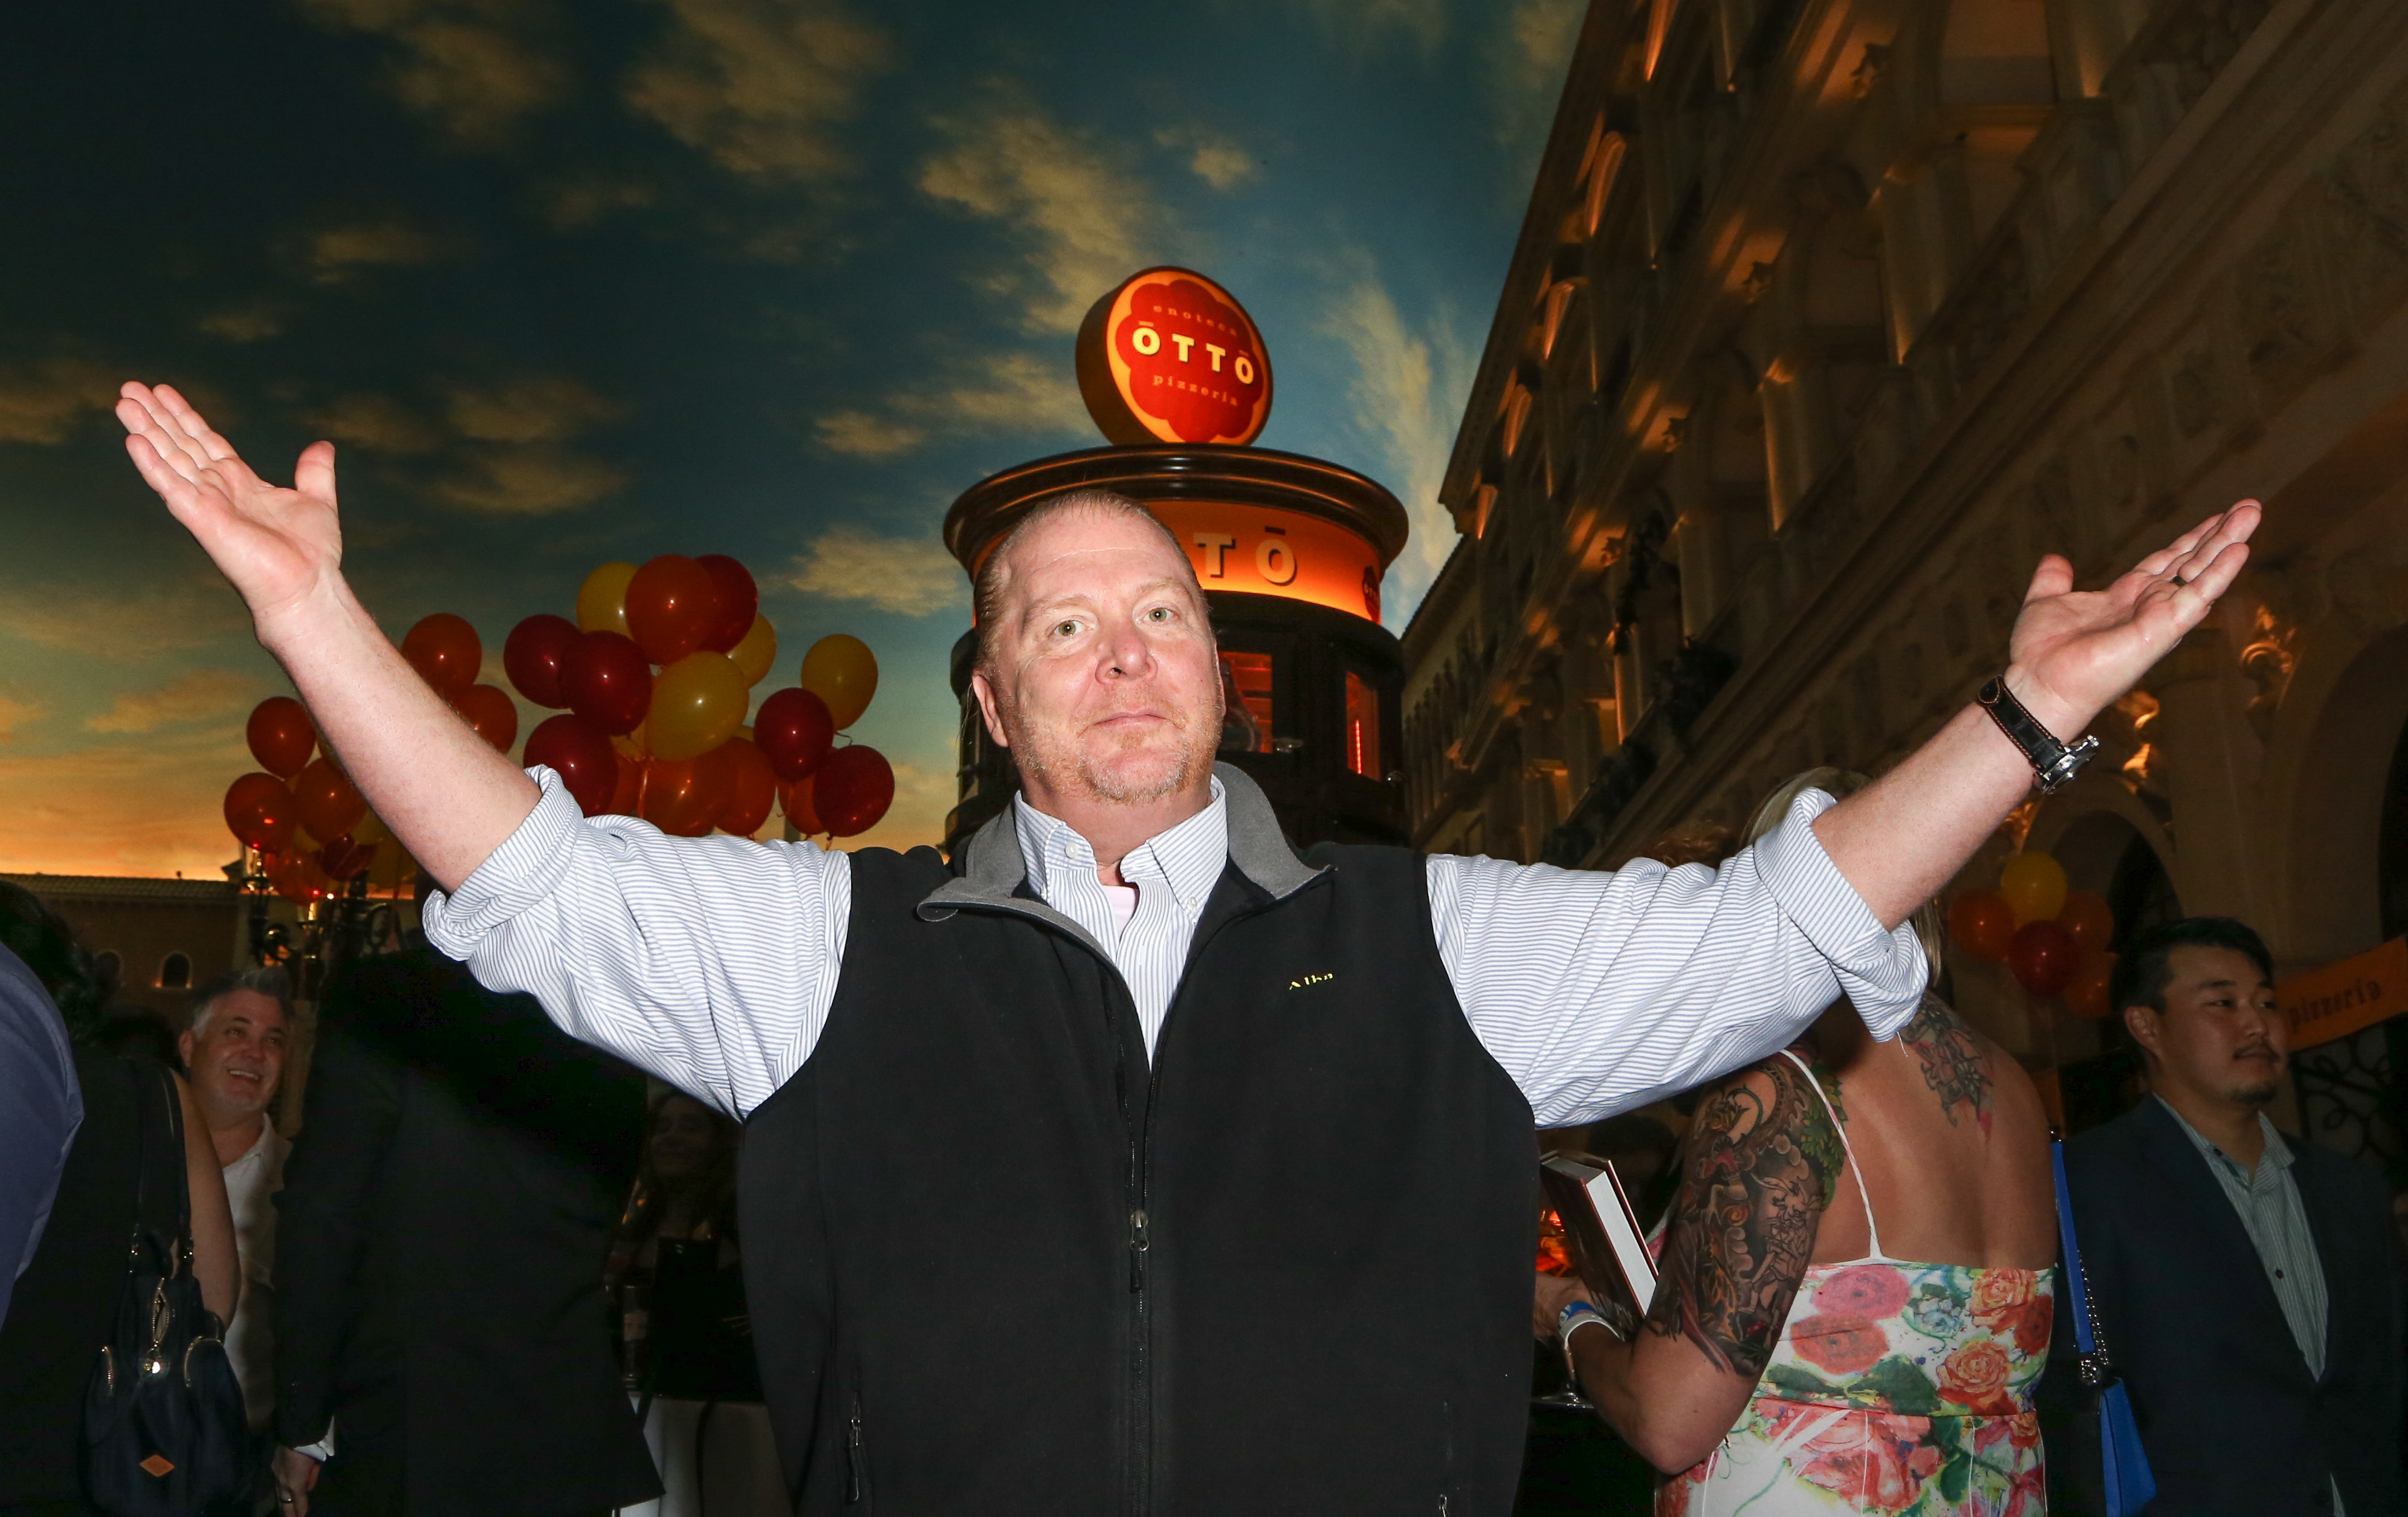 Mario Batali Will Not Face Criminal Charges in New York